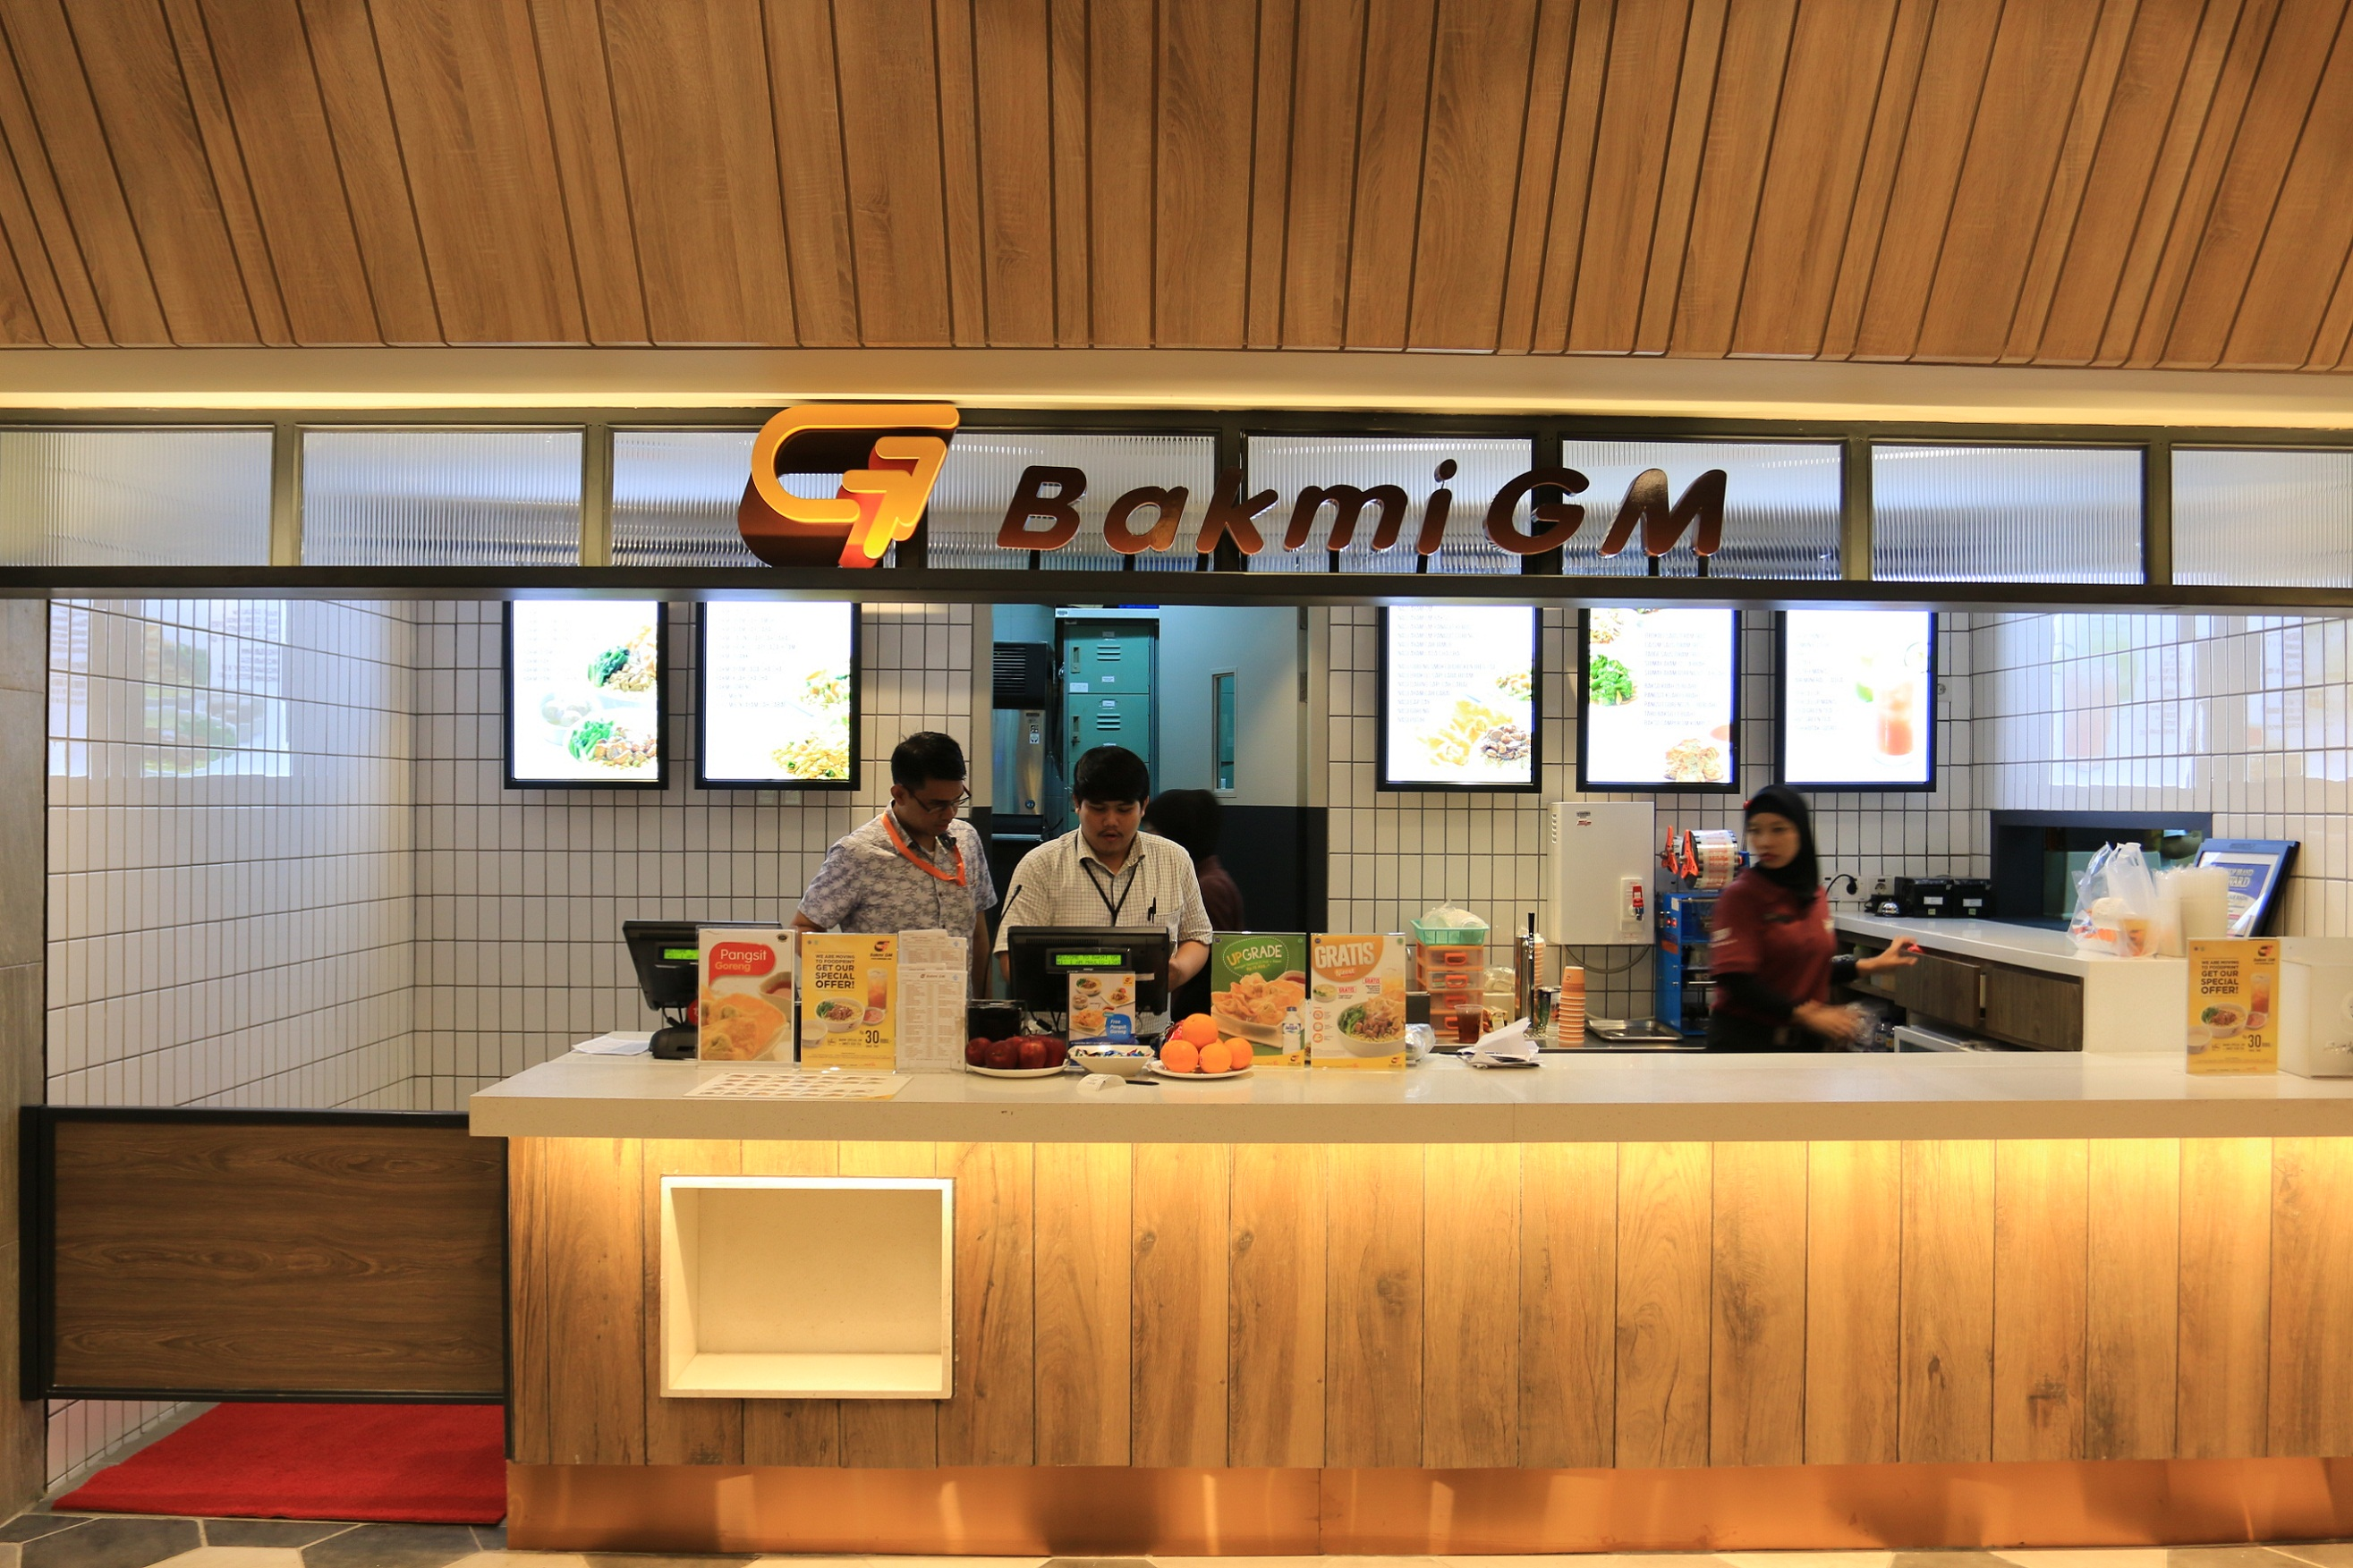 bakmi gm - grand indonesia